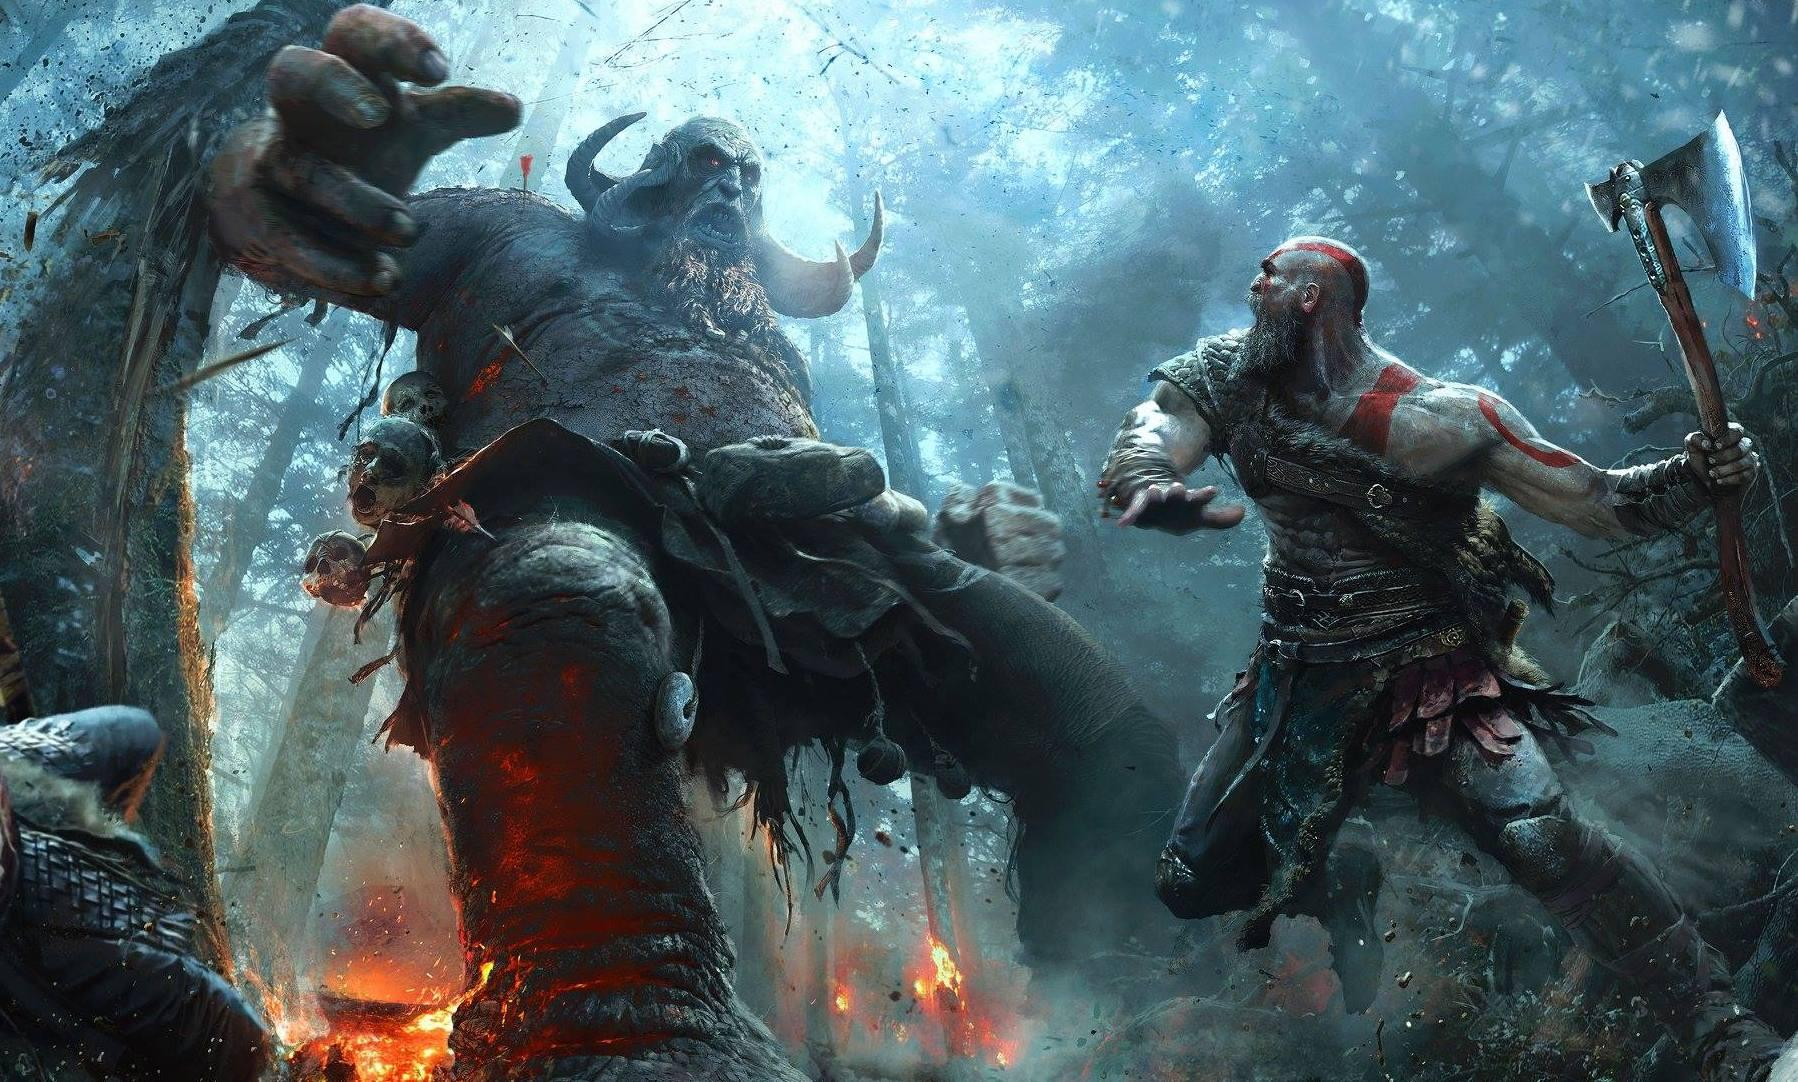 You can grab a copy of God of War on Amazon for $9.99 during their Cyber Monday 2019 sale.